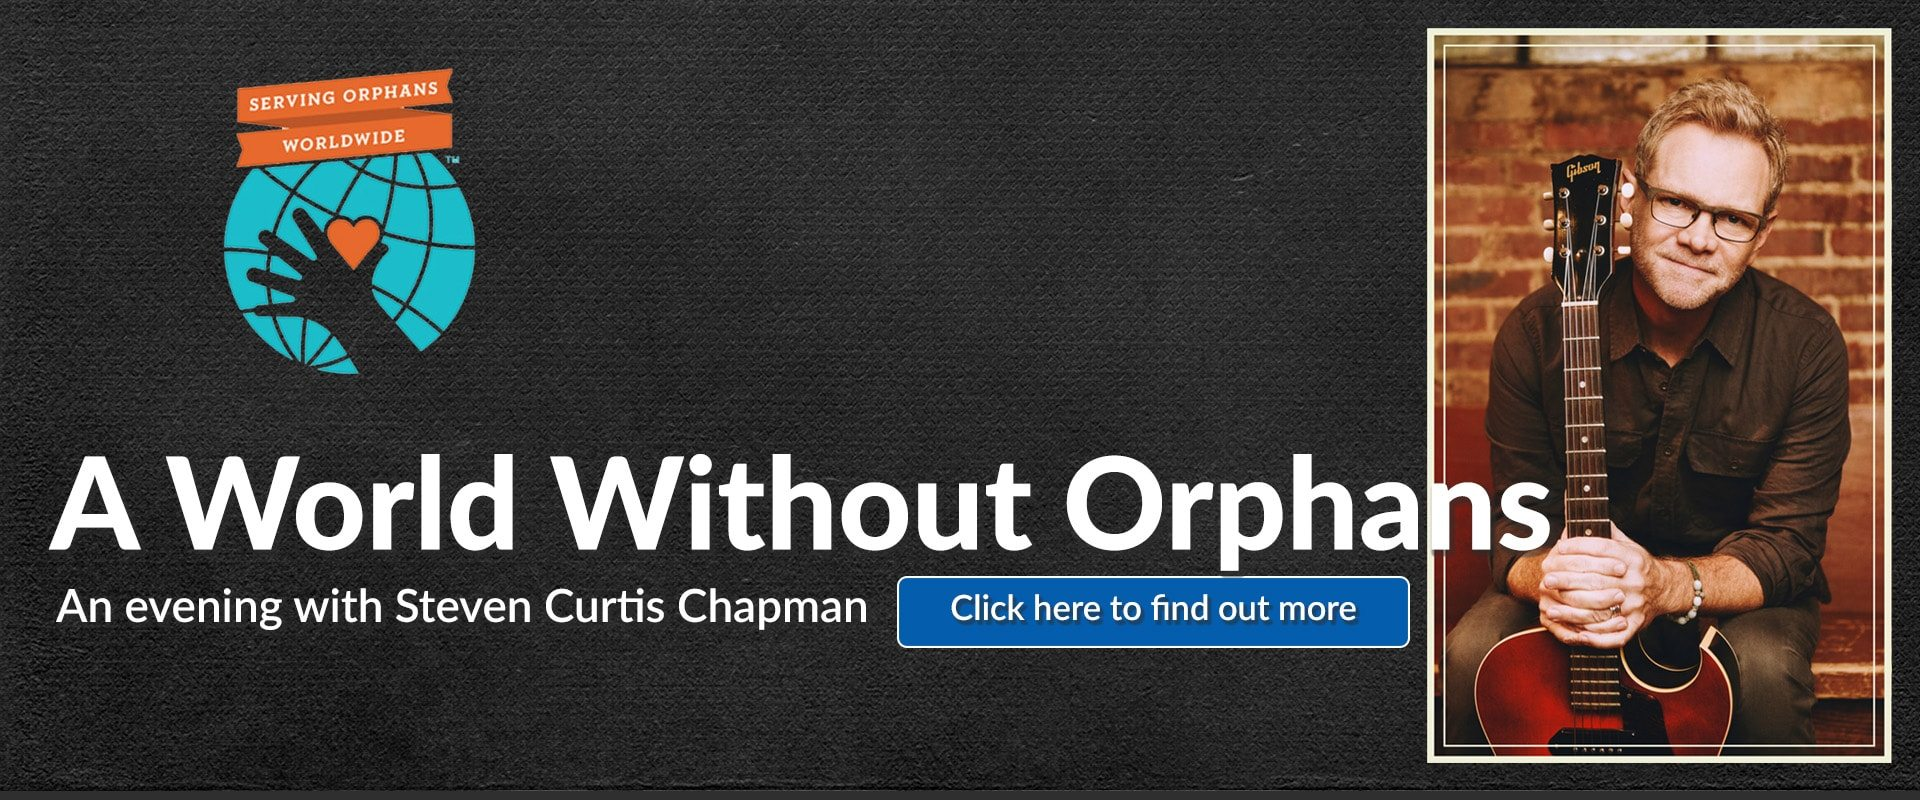 91.3 KGLY East Texas Christian Radio A World Without Orphans - An evening with Steven Curtis Chapman